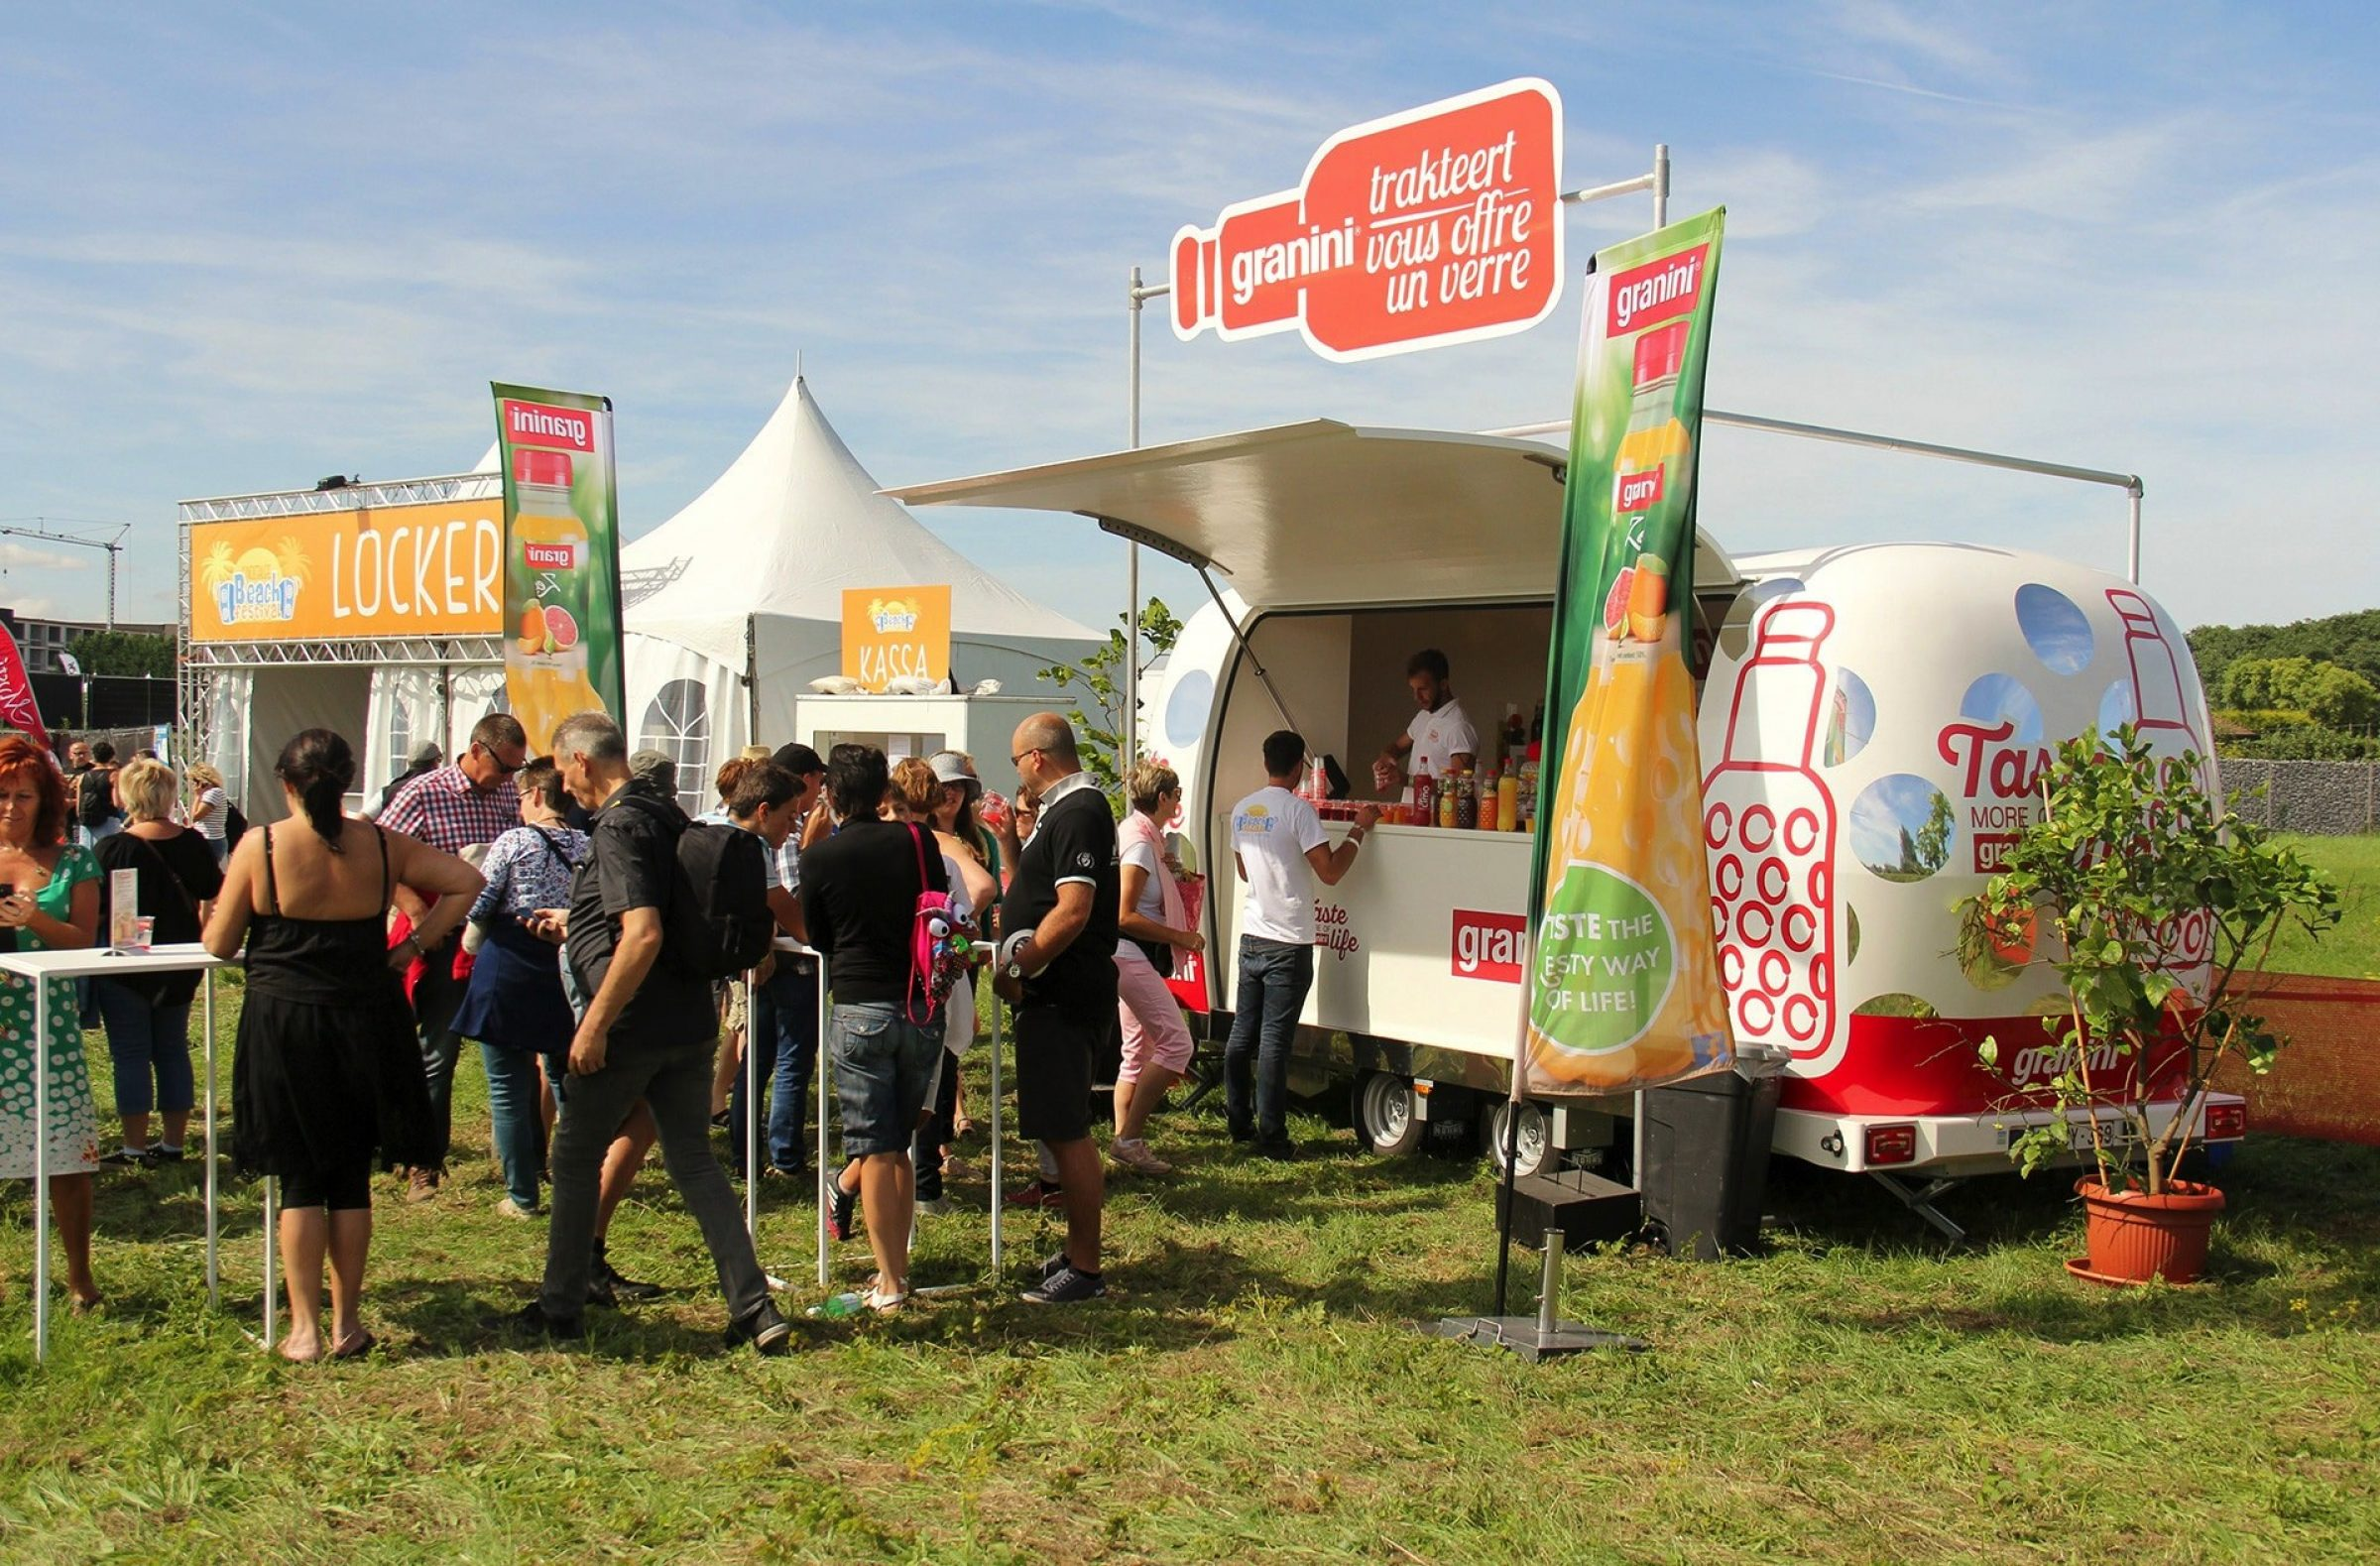 Fast Forward Evenementenbureau Gent Product Sampling Granini P1Auruab8R1Kgn73Tcsb1Glh1Ce33